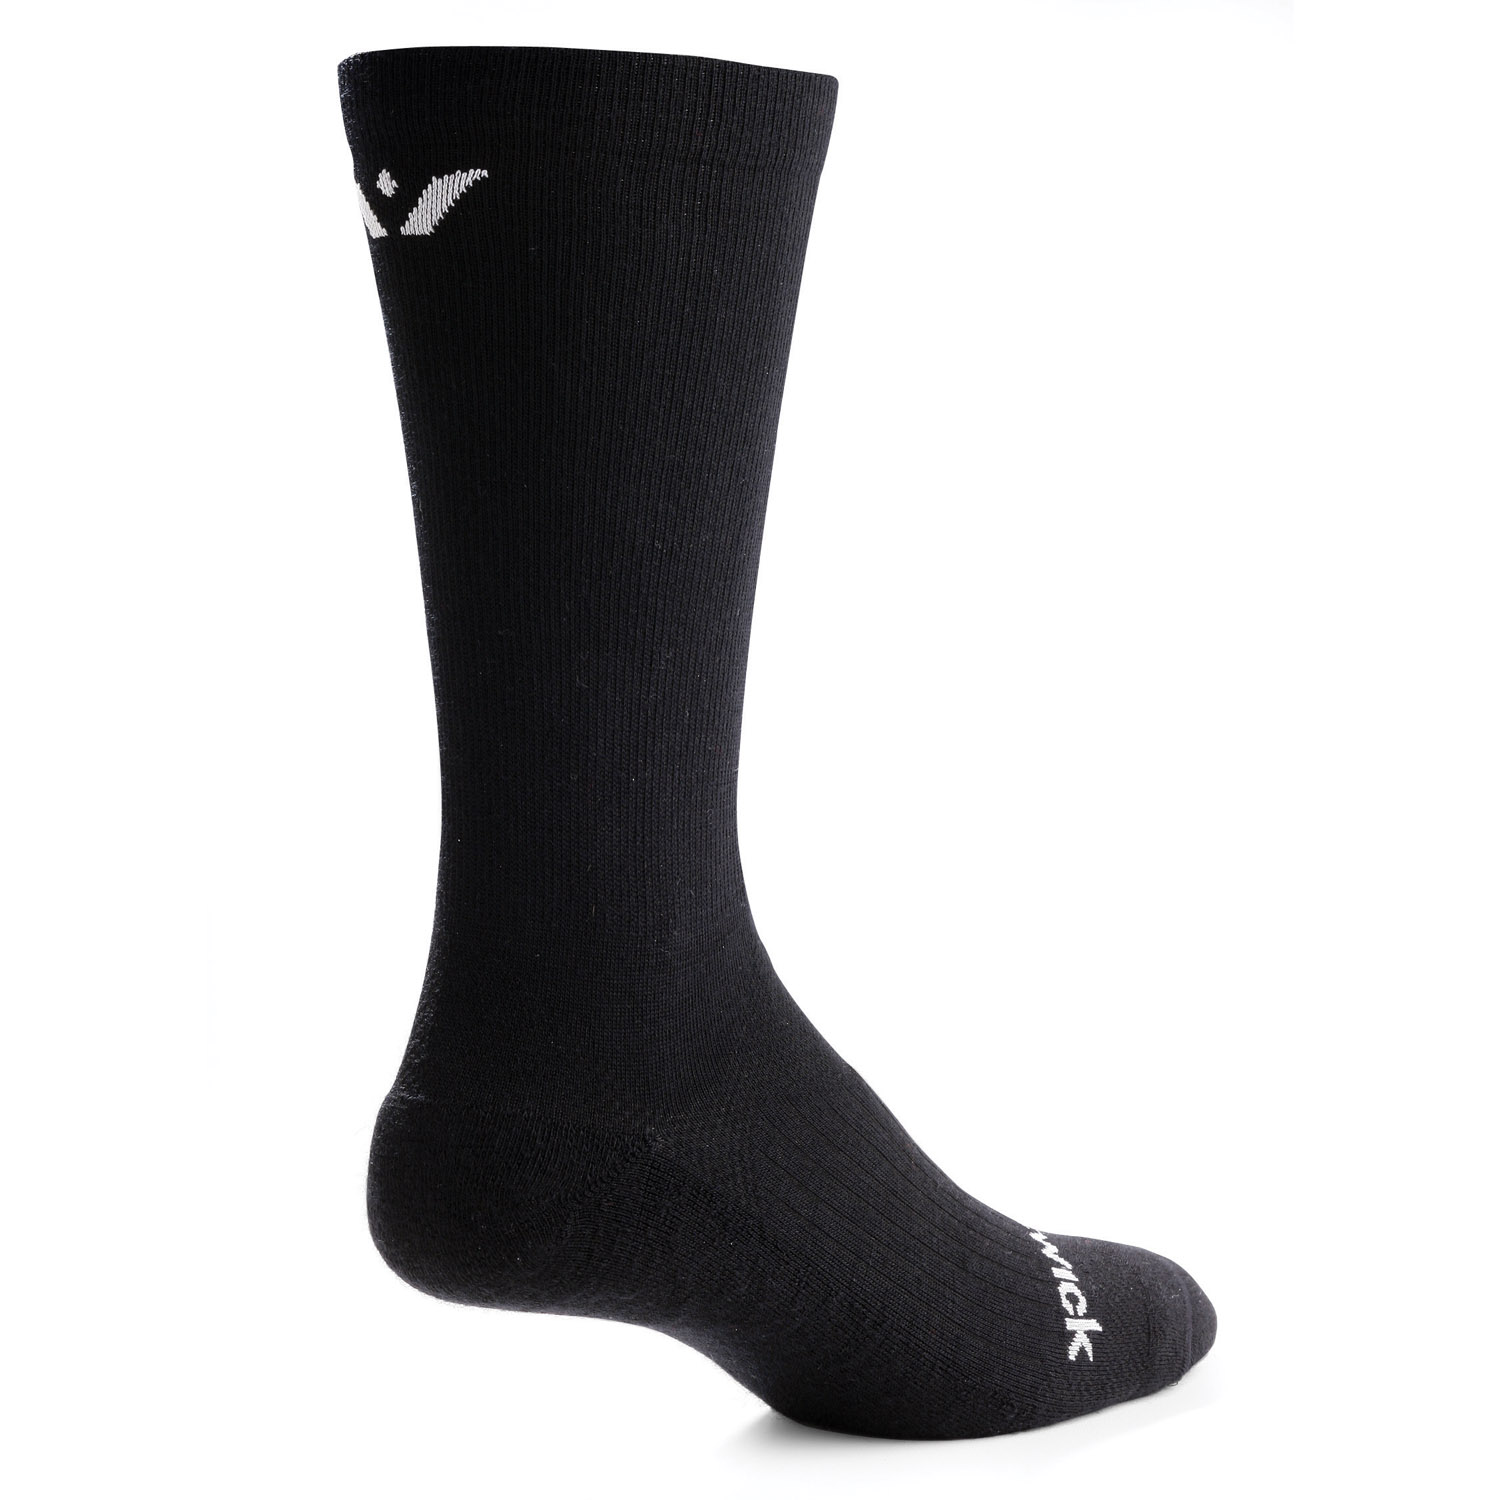 Swiftwick Pursuit Mid Calf Uniform Socks